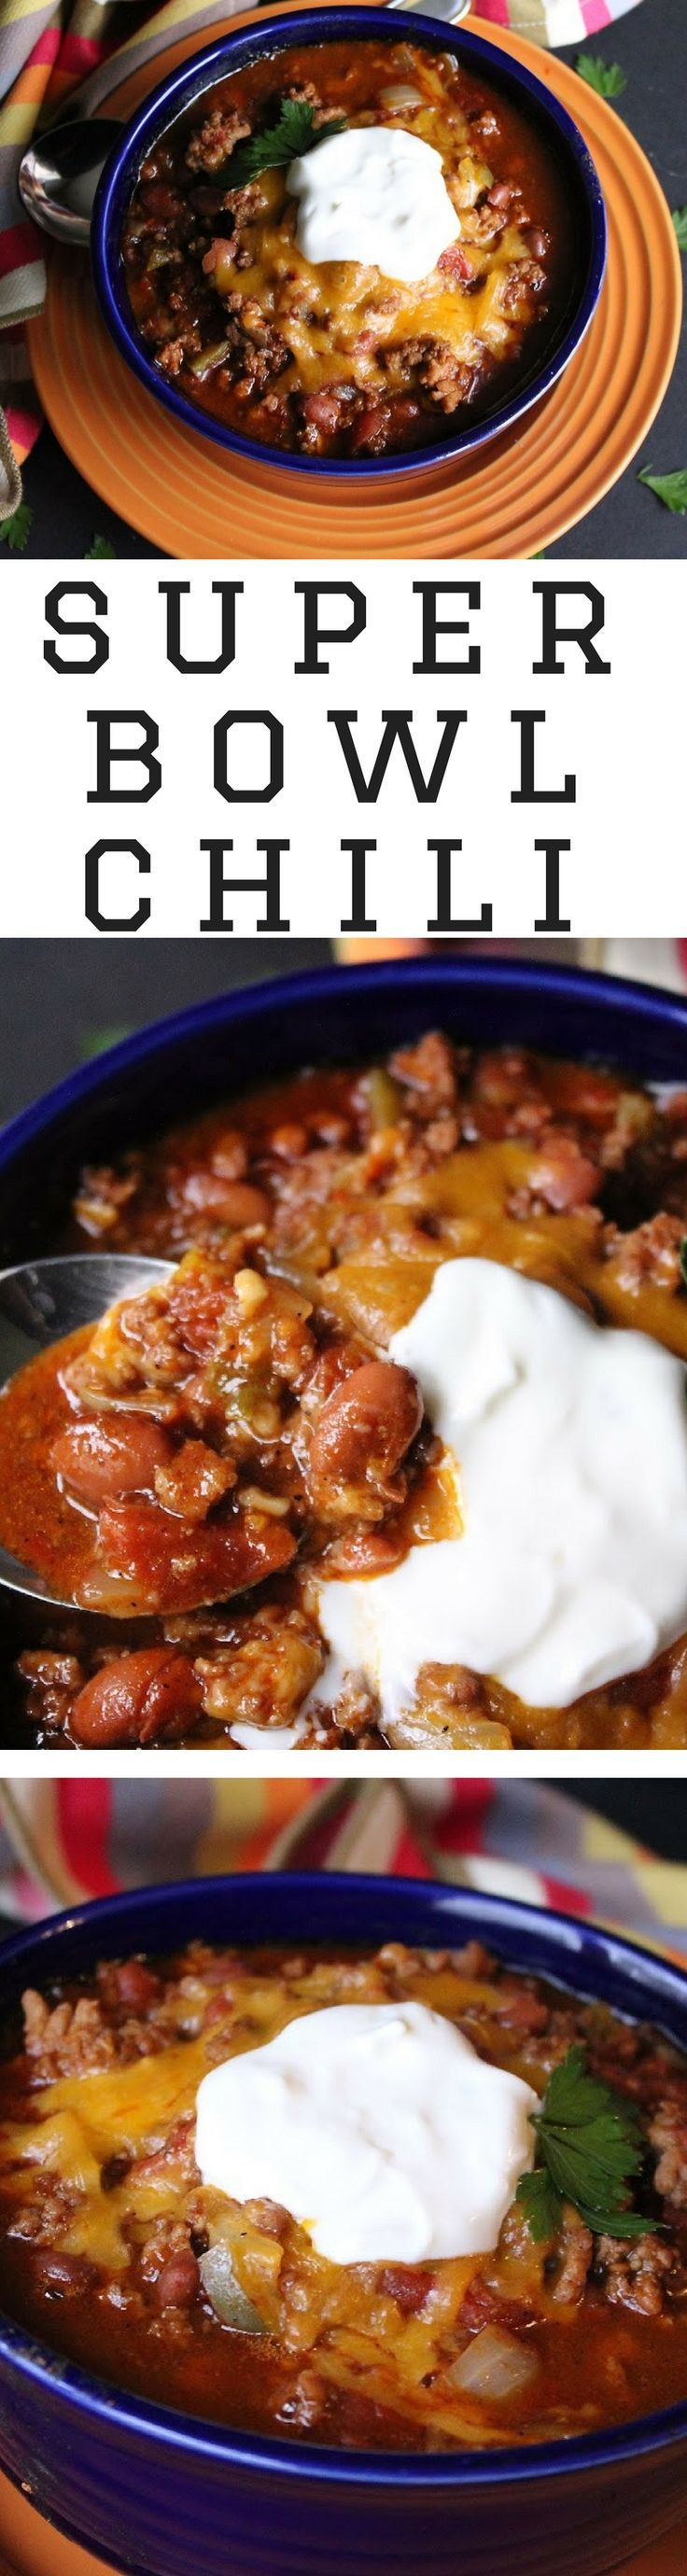 Superbowl Chili | Chunky and full of texture, this chili isn't for the faint of heart. It has some kick behind it. I love the mixture of pork and ground beef - it adds something a little different. The robust flavor from the chili powder and cumin really makes this yummy. Cheese and sour cream mellow this a little and are the perfect topping.